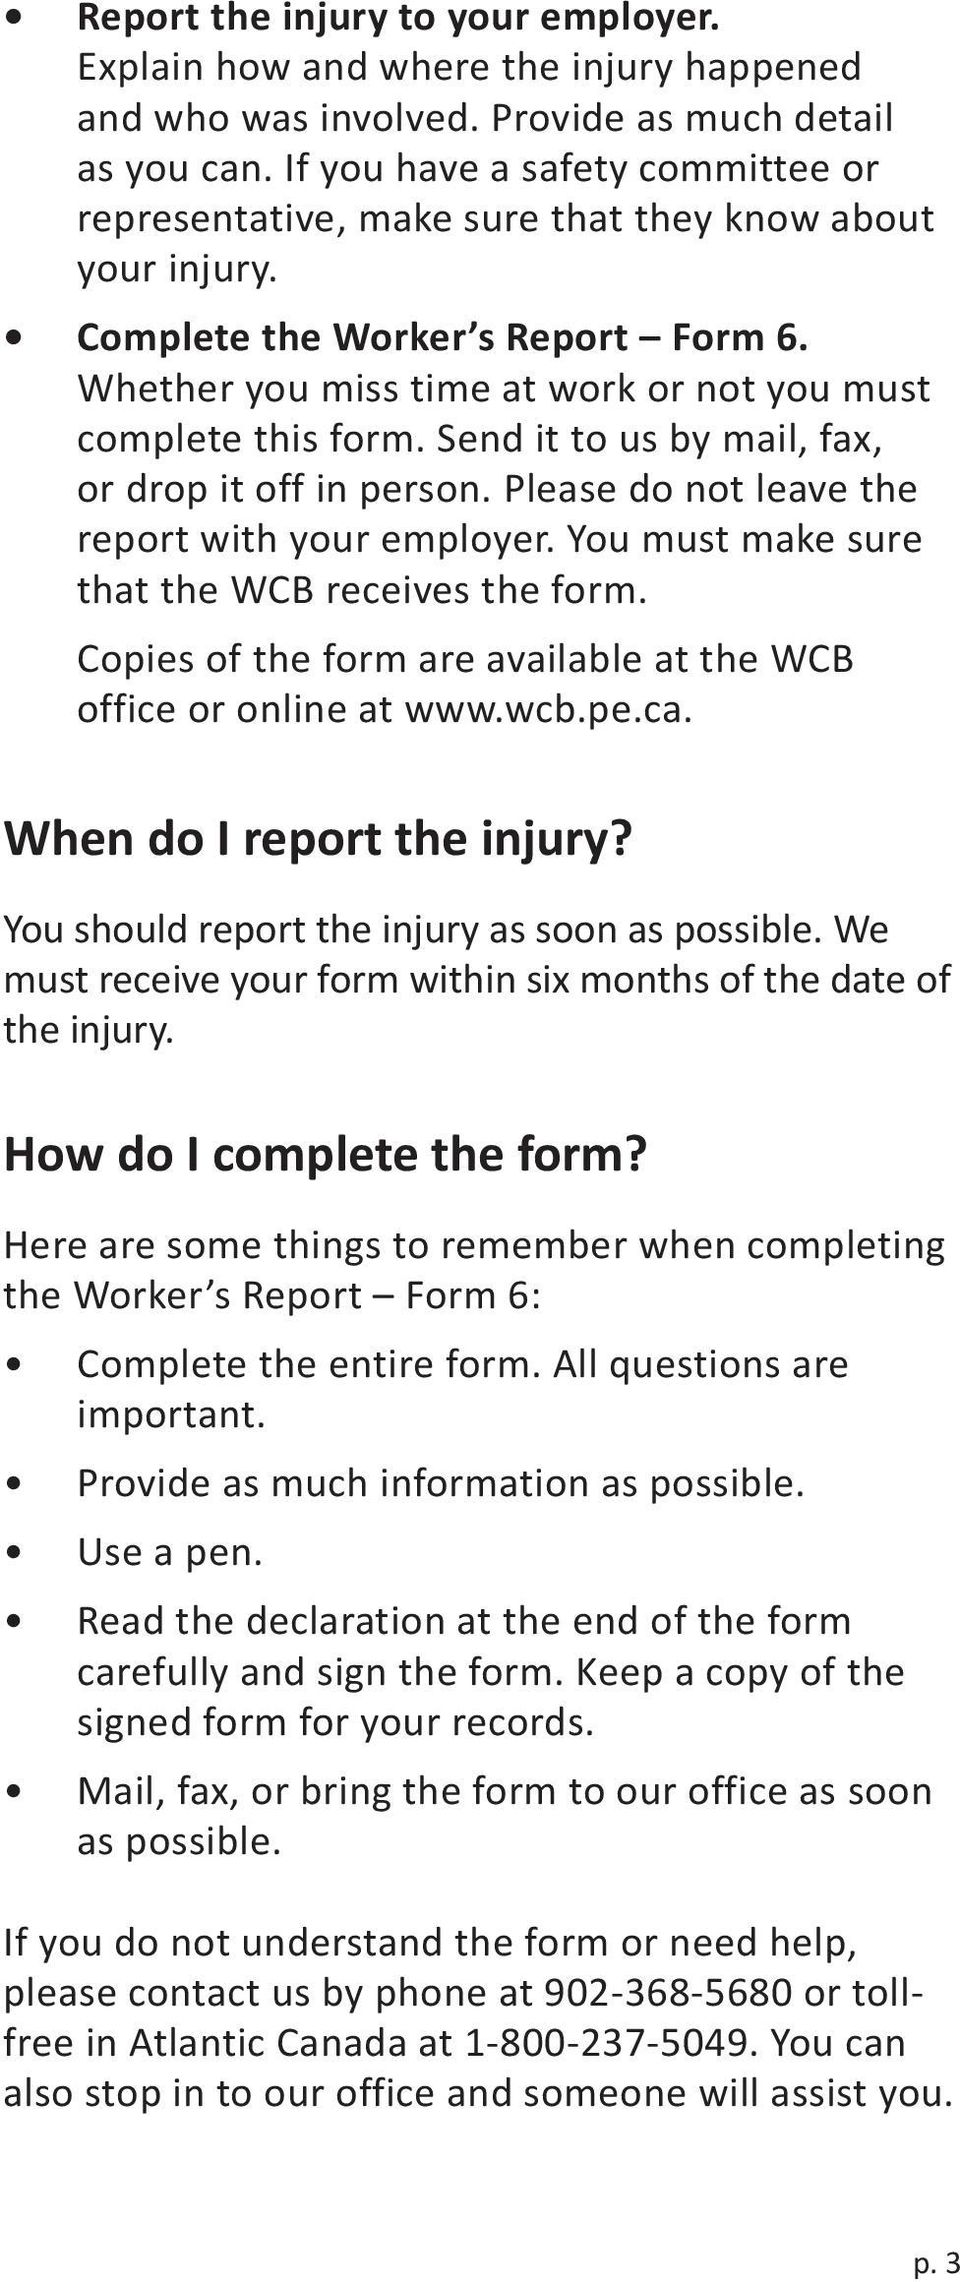 Send it to us by mail, fax, or drop it off in person. Please do not leave the report with your employer. You must make sure that the WCB receives the form.